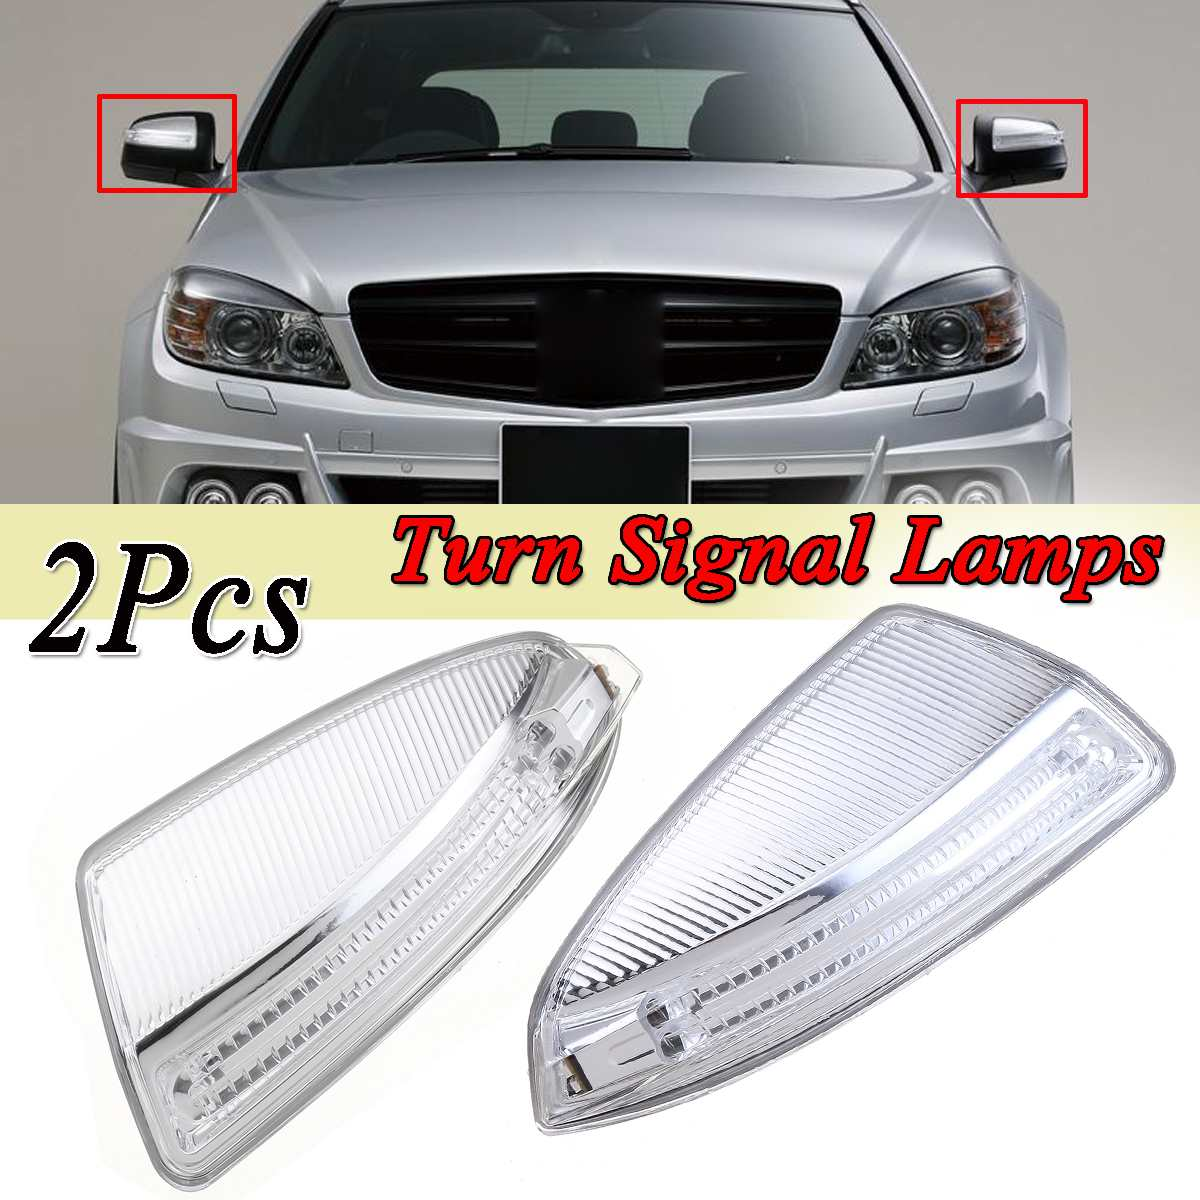 Left / Right W204 Door Rear View Mirror Side Mirror Turn Signal Lights Lamps For Mercedes For Benz ML Class C Class W204